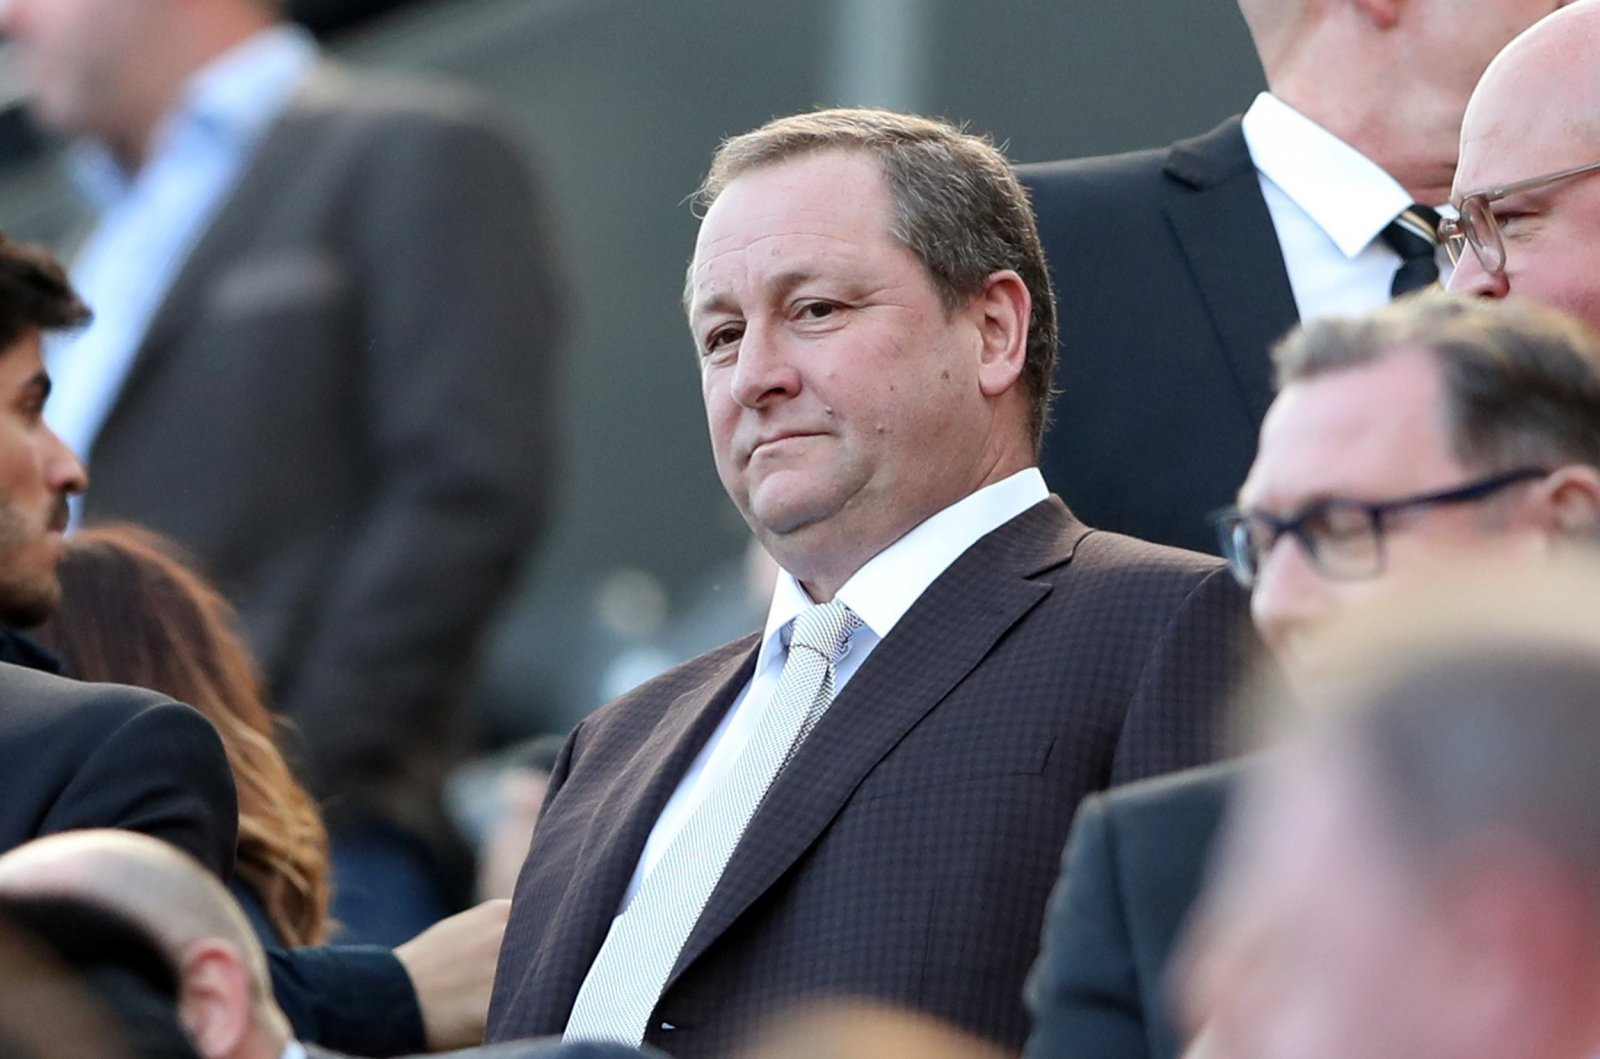 Newcastle United: These fans think Mike Ashley seems flustered